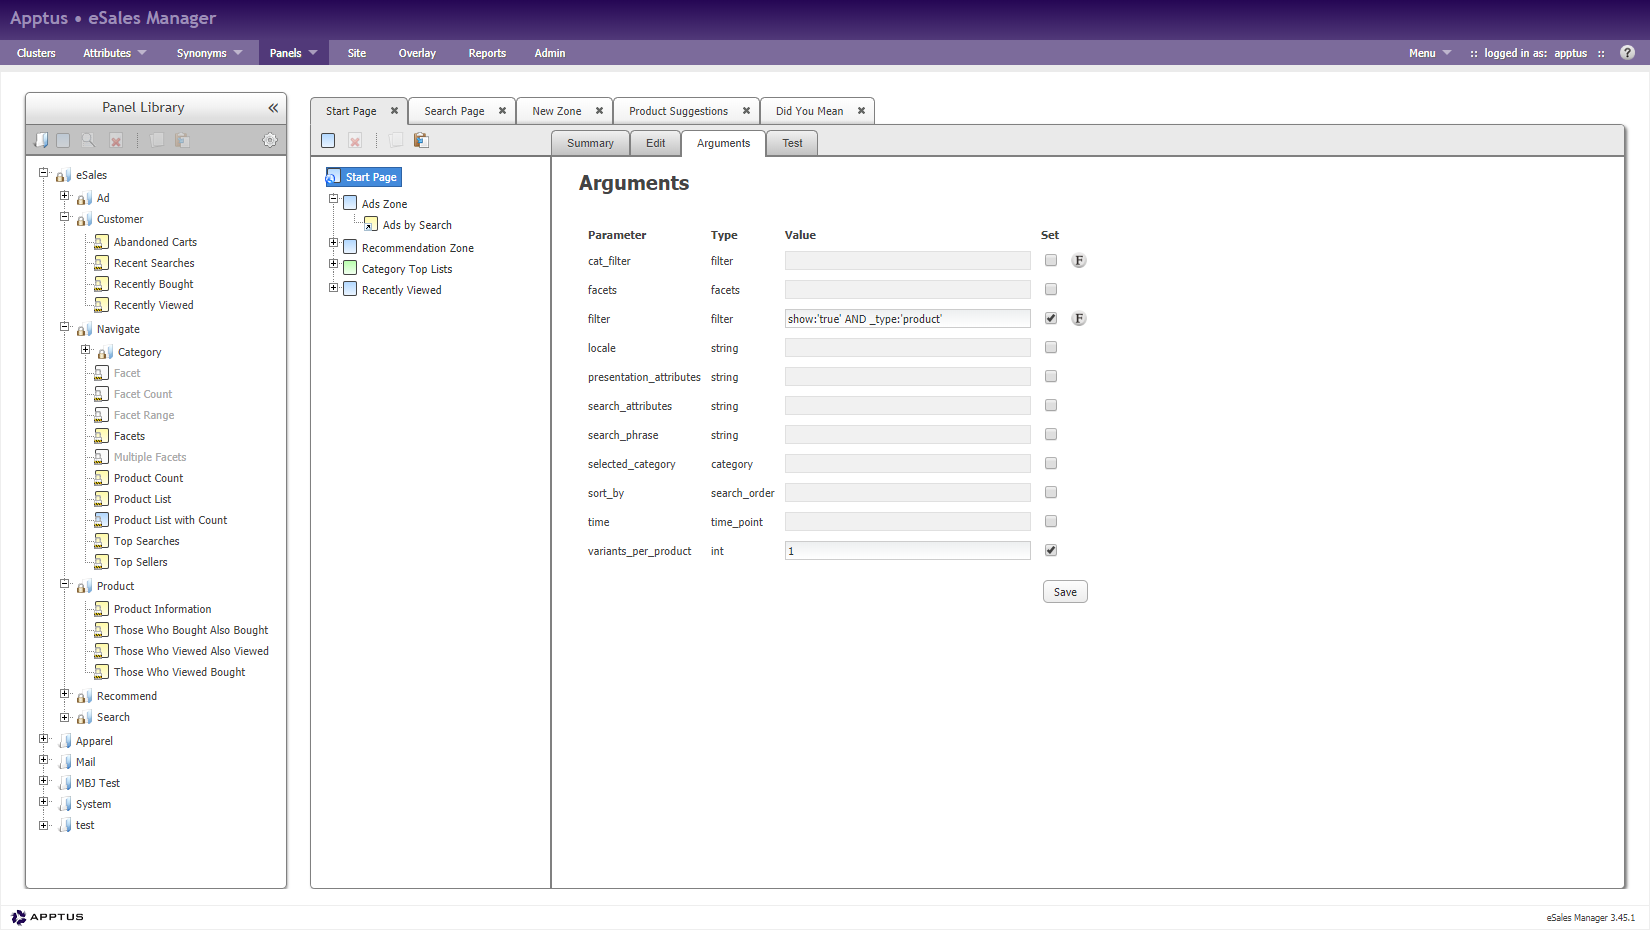 Graphic showing panel configuration in Apptus eSales Manager